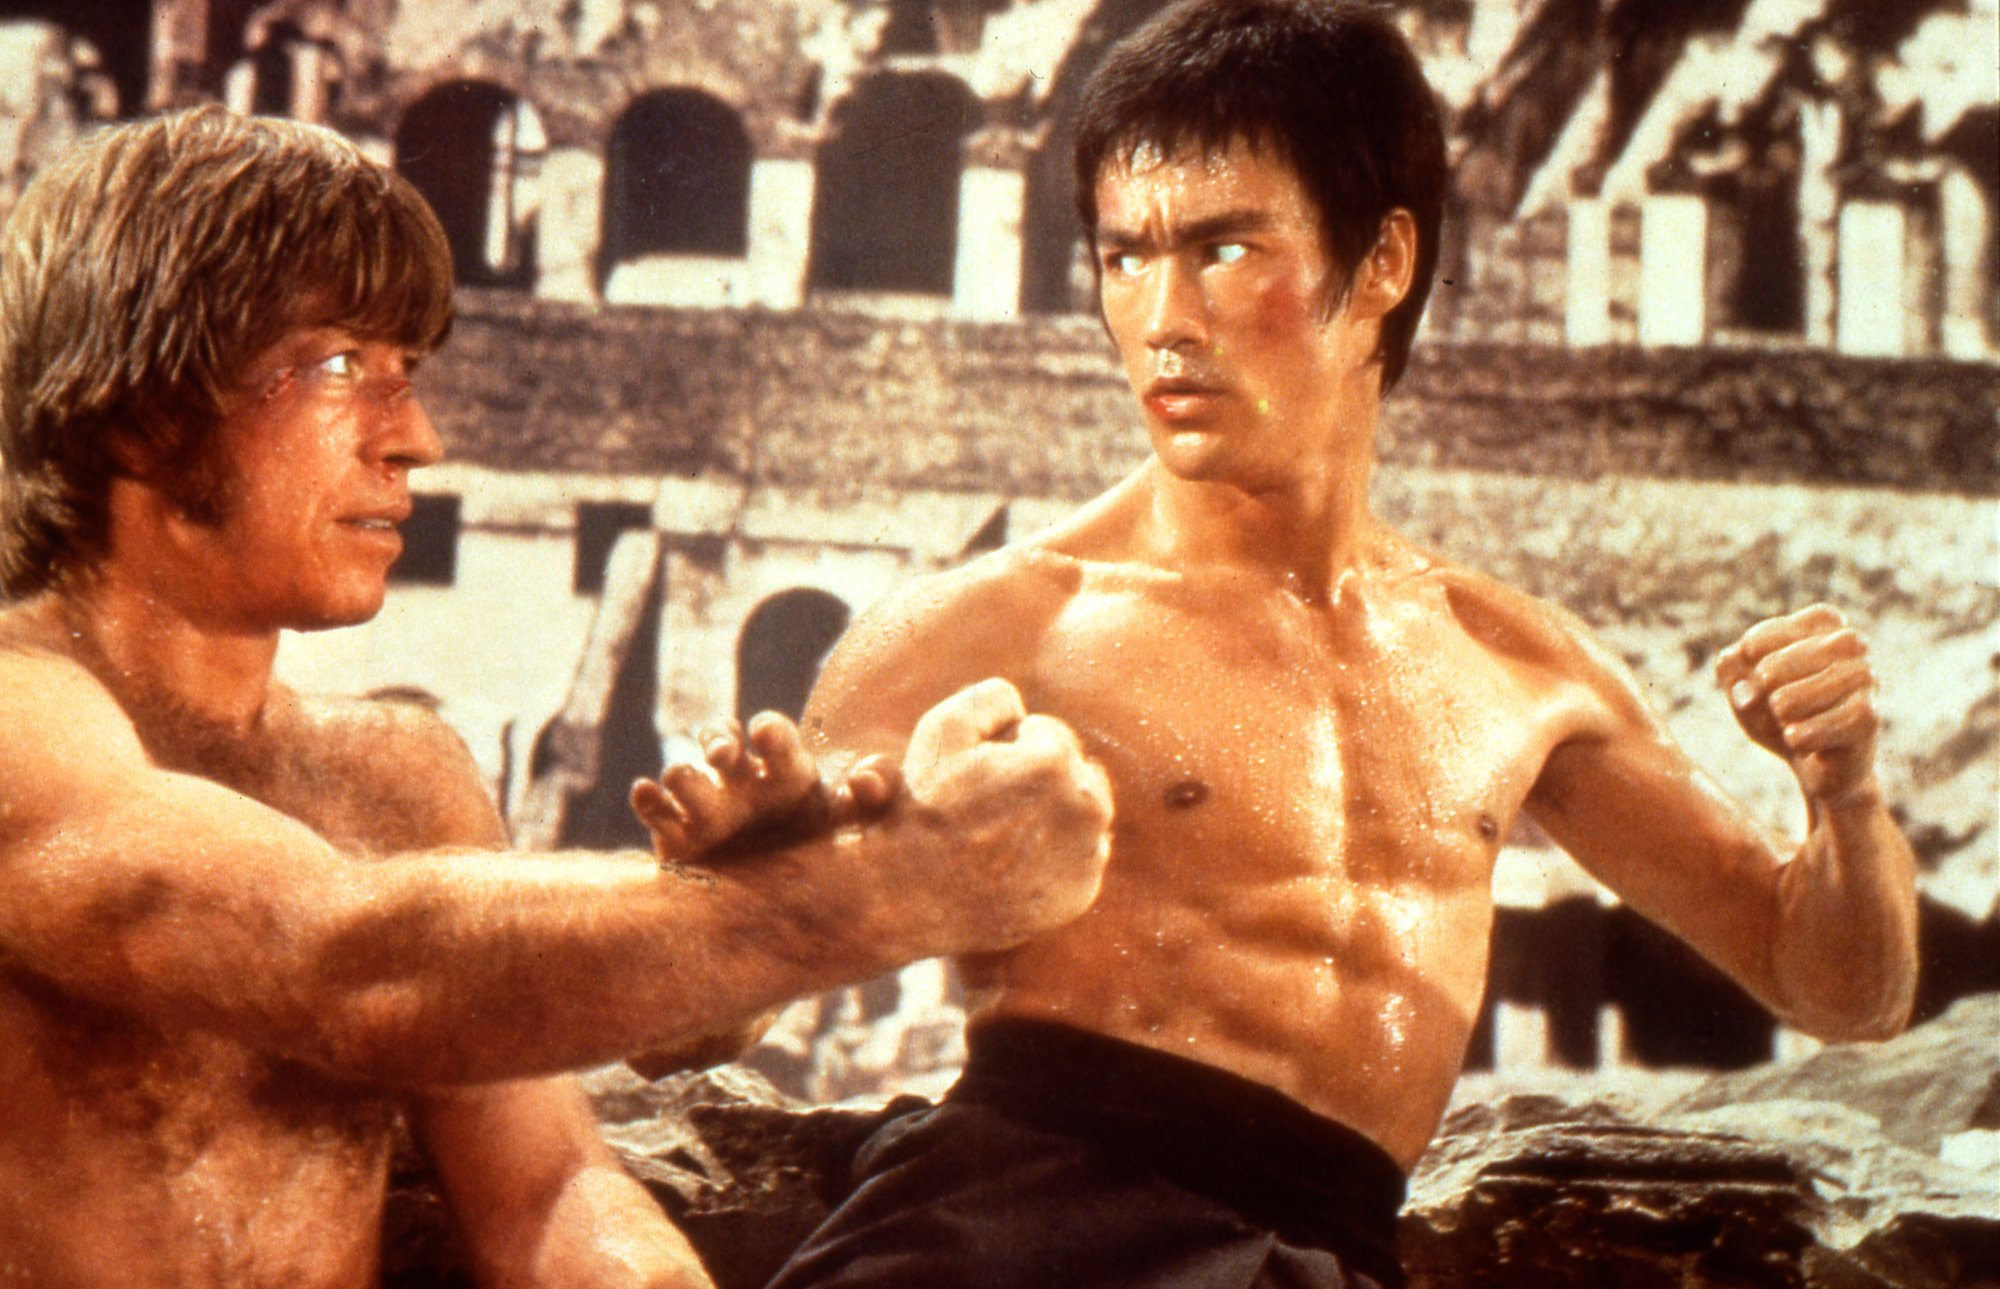 Chuck Norris and Bruce Lee fighting each other in the Roman Colosseum